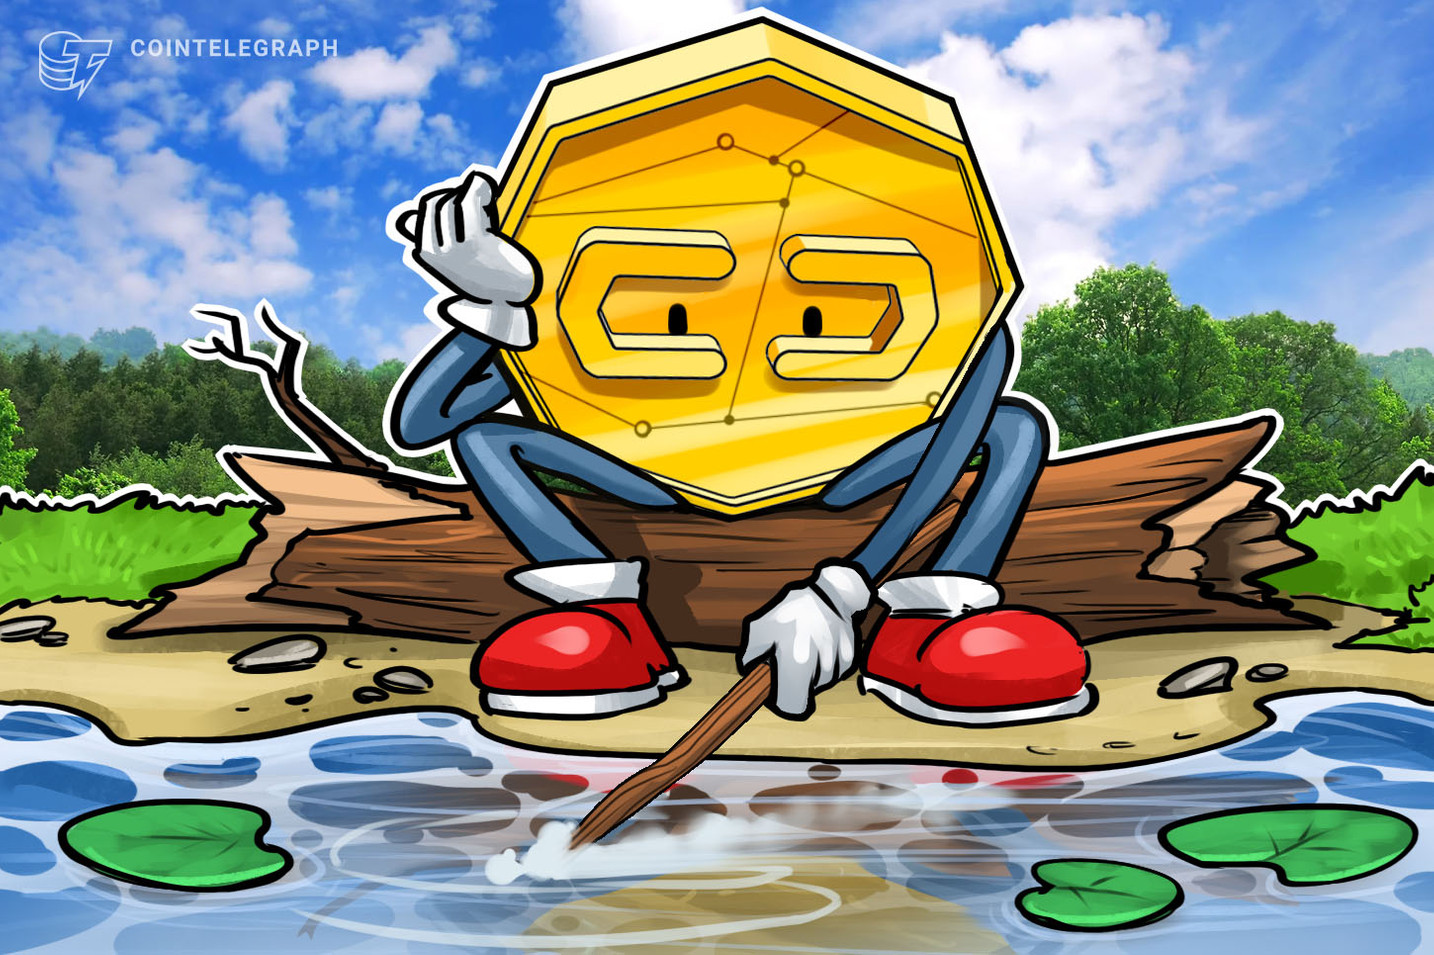 ICO Performance in Q3 2018 Saw 'Overall Disappointment,' Study Shows